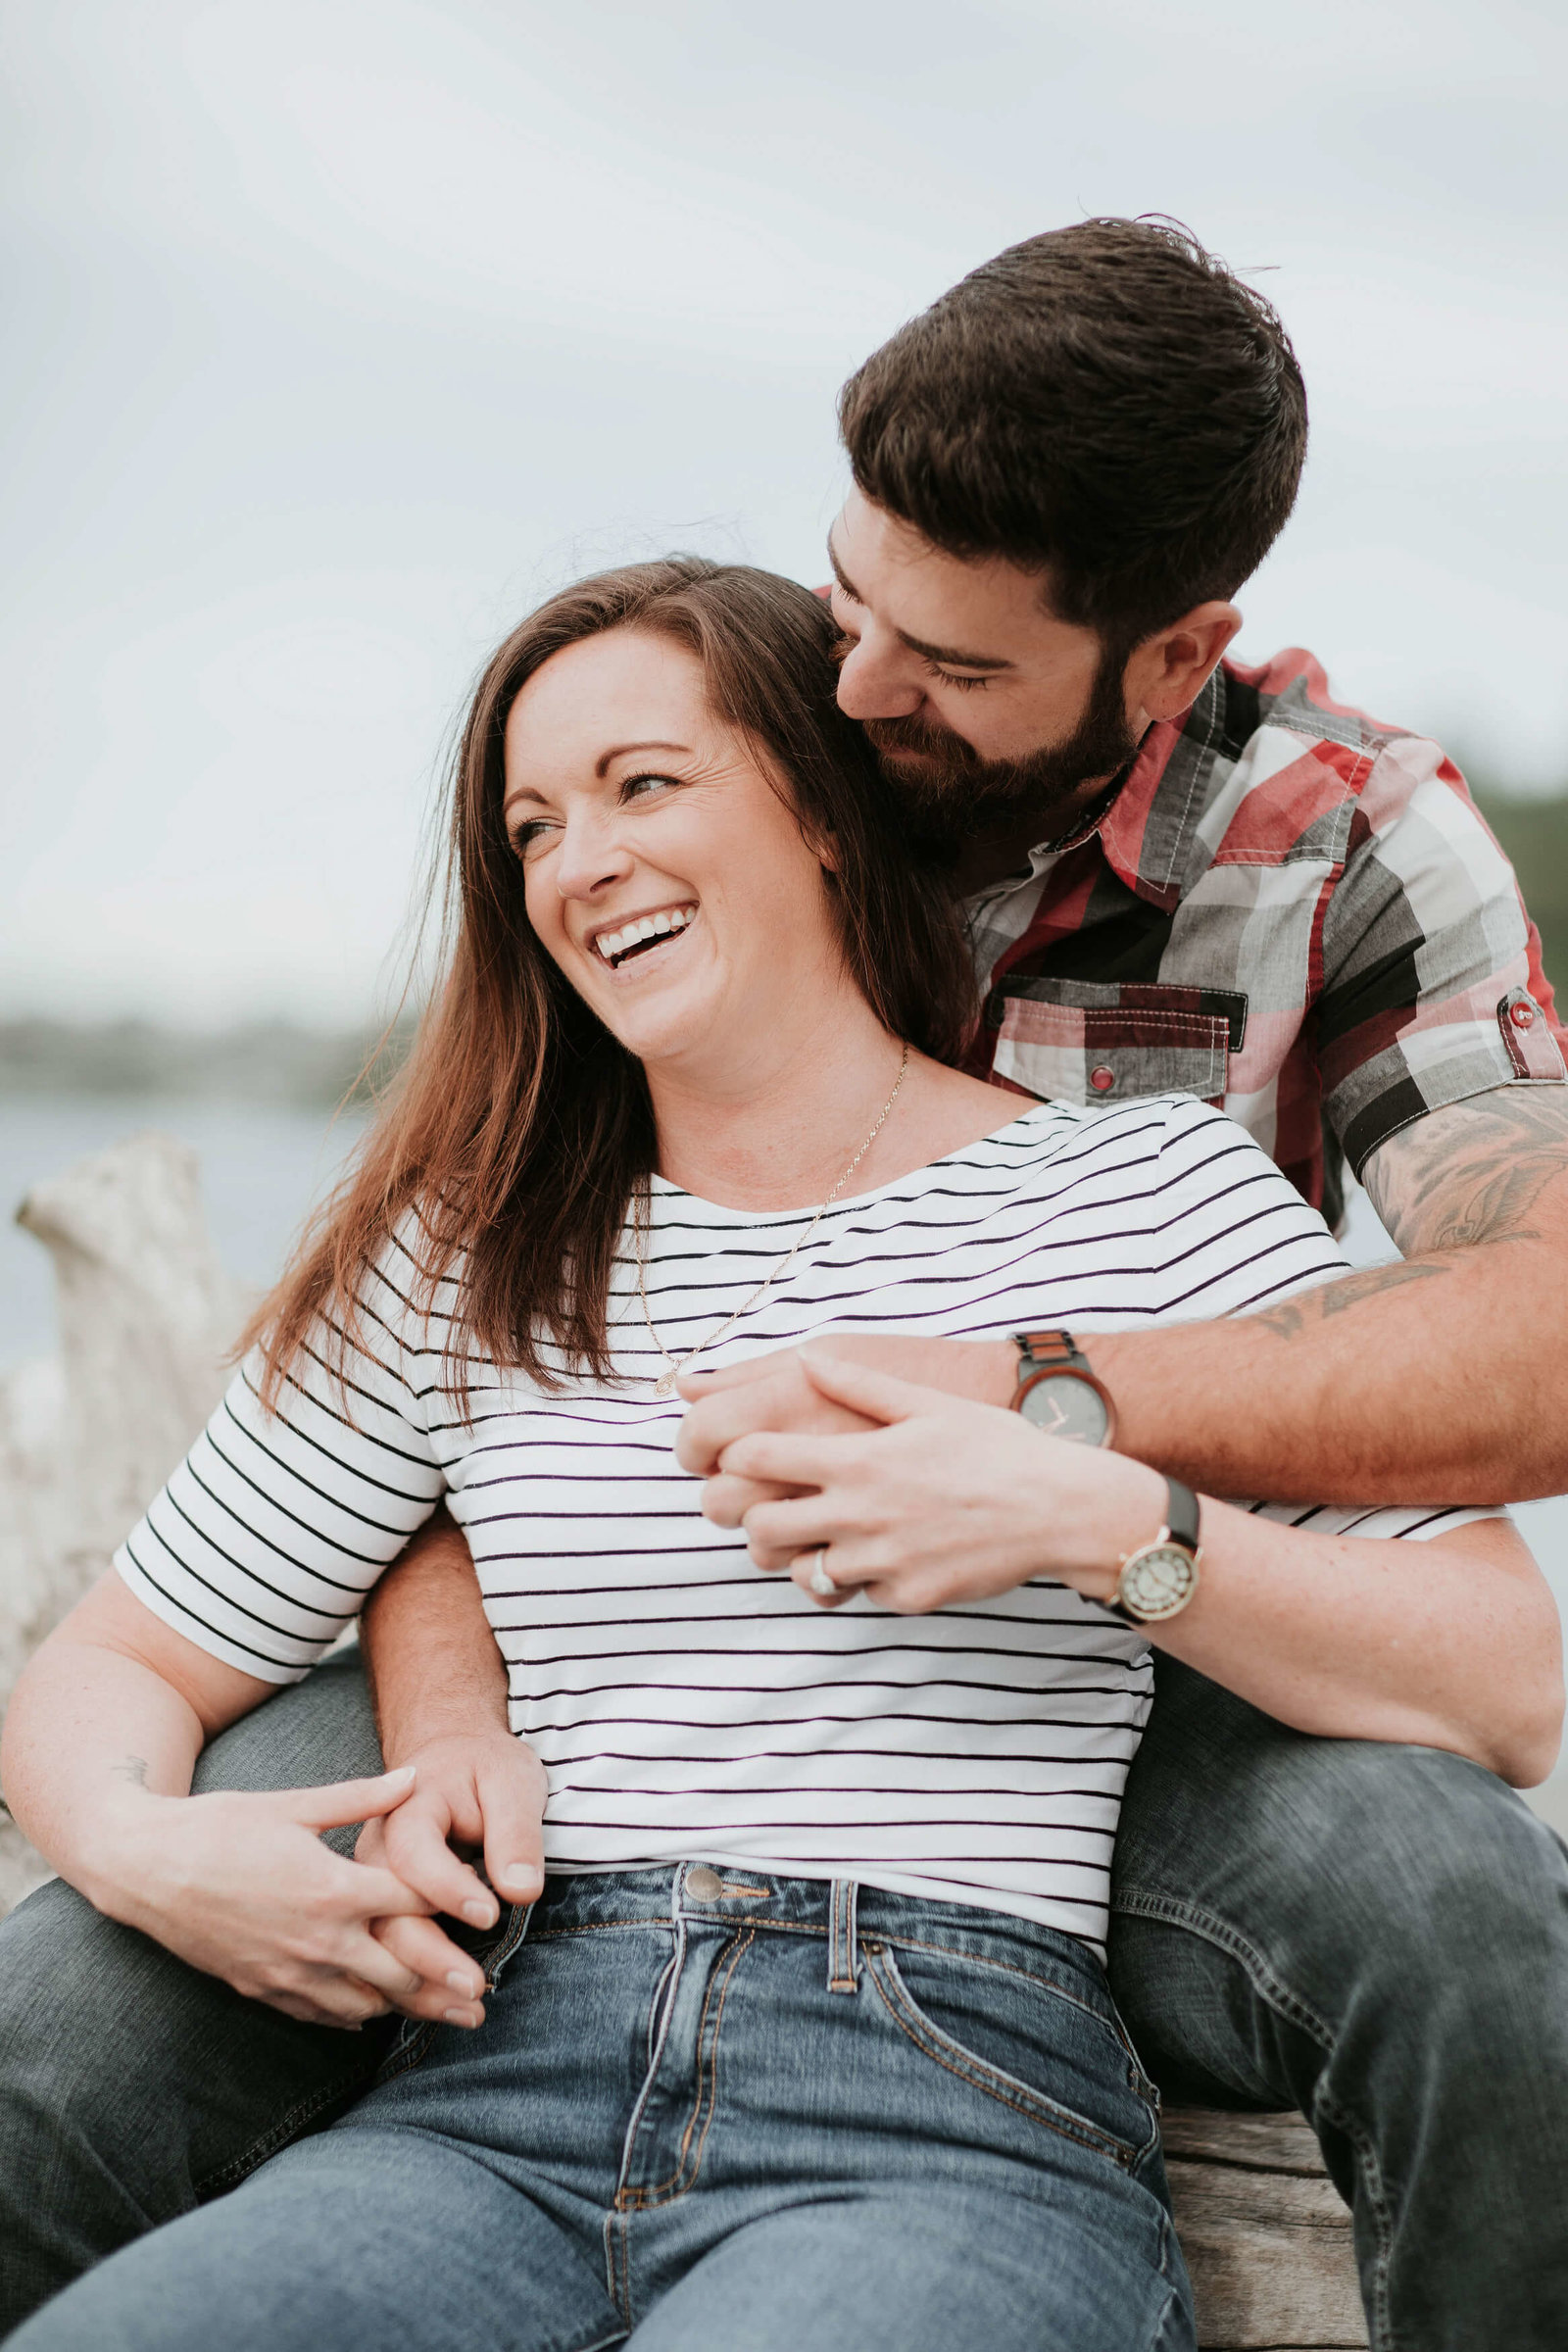 Discovery-Park-Engagement-Chelsey+Troy-by-Adina-Preston-Photography-2019-76